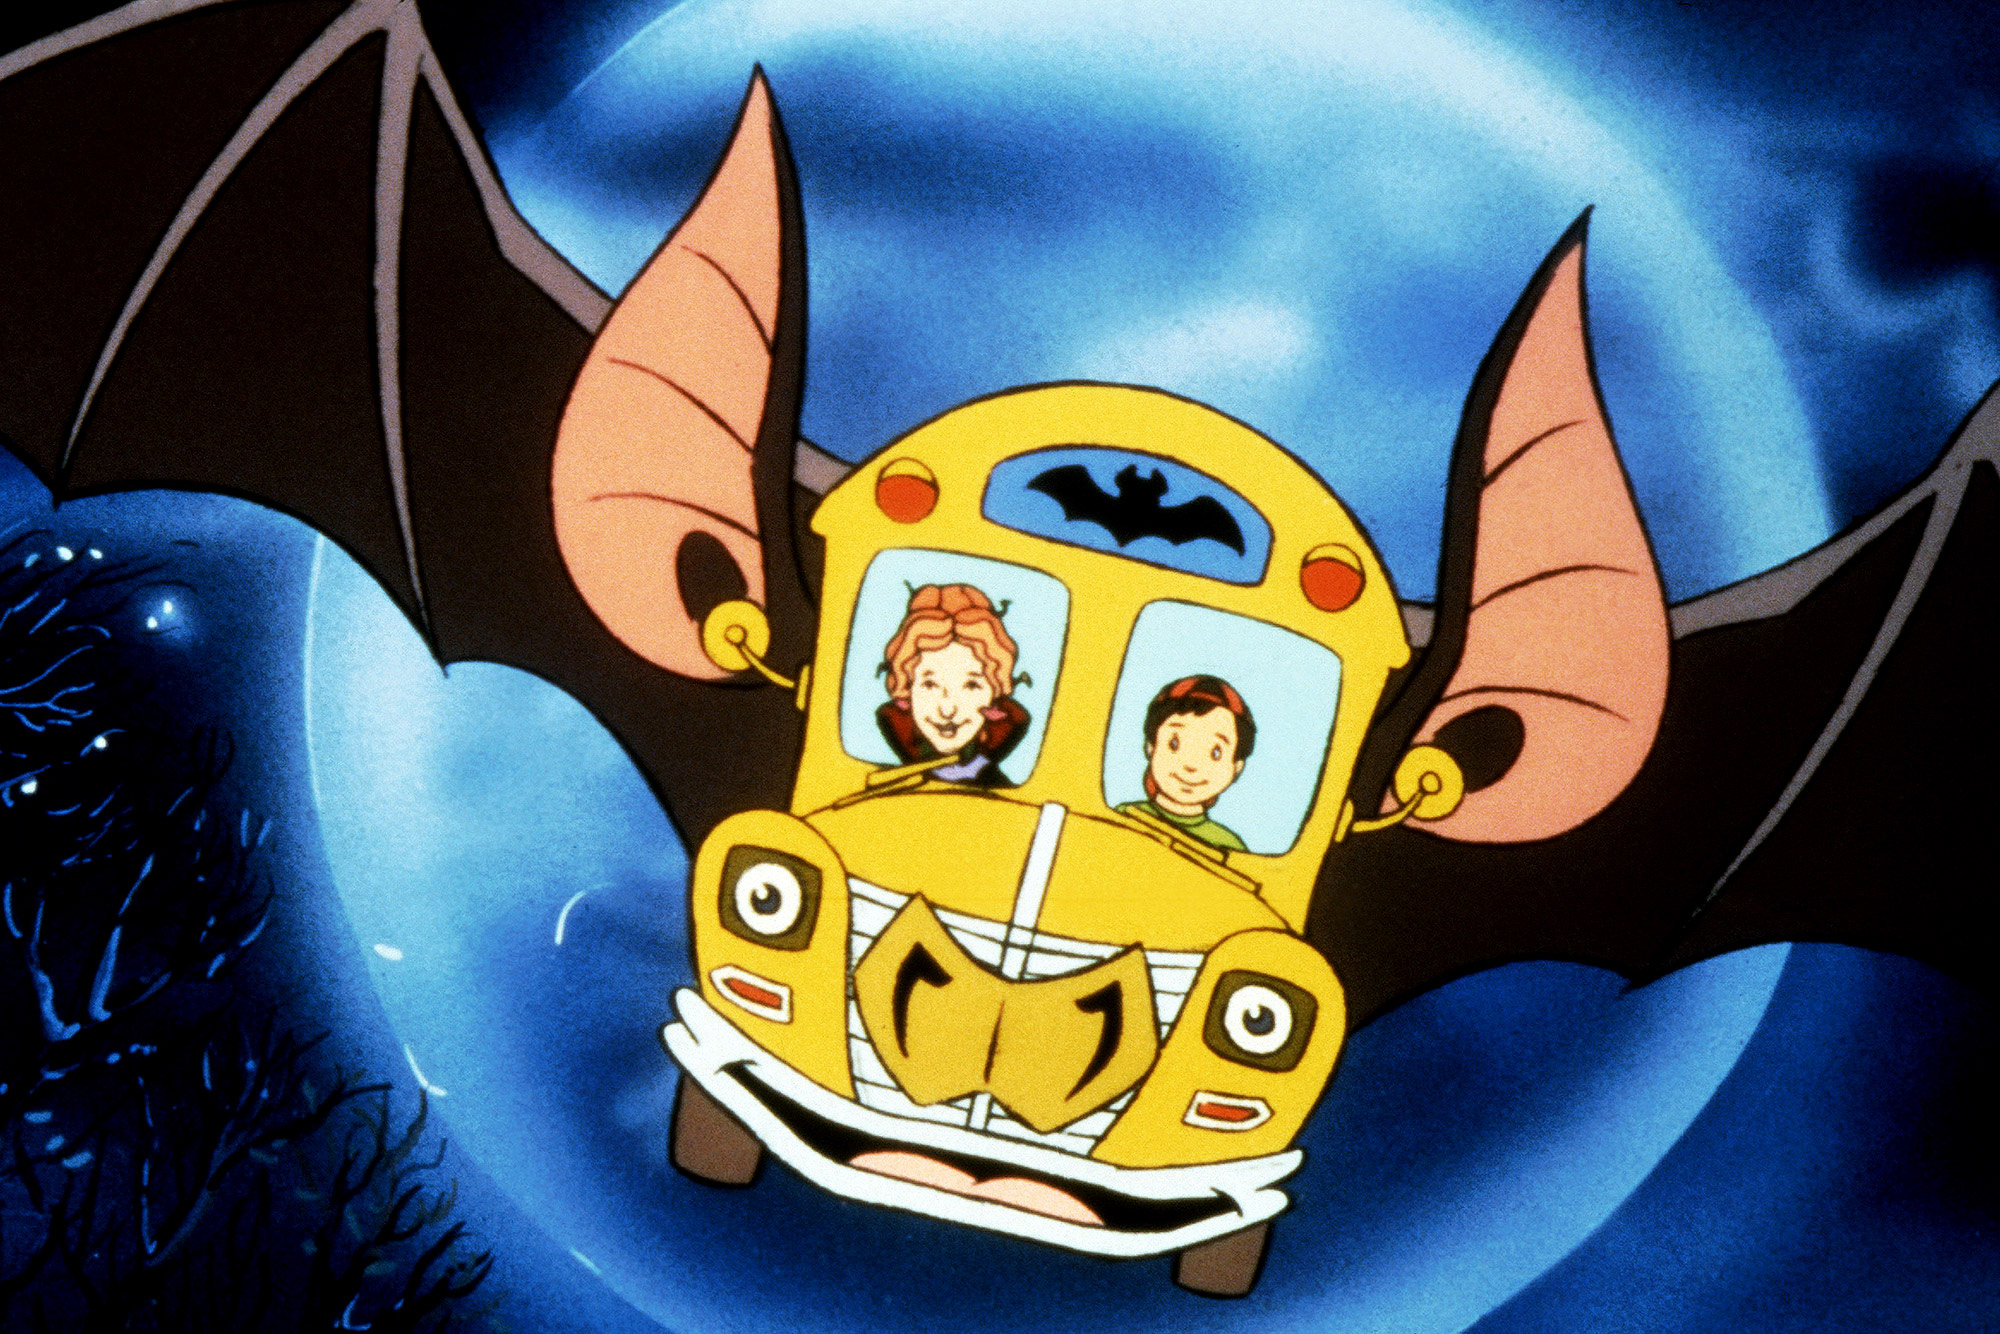 THE MAGIC SCHOOL BUS, (from left): Ms. Valerie Frizzle, Ralphie Tennelli, 1994-97. photo: © Nelvana